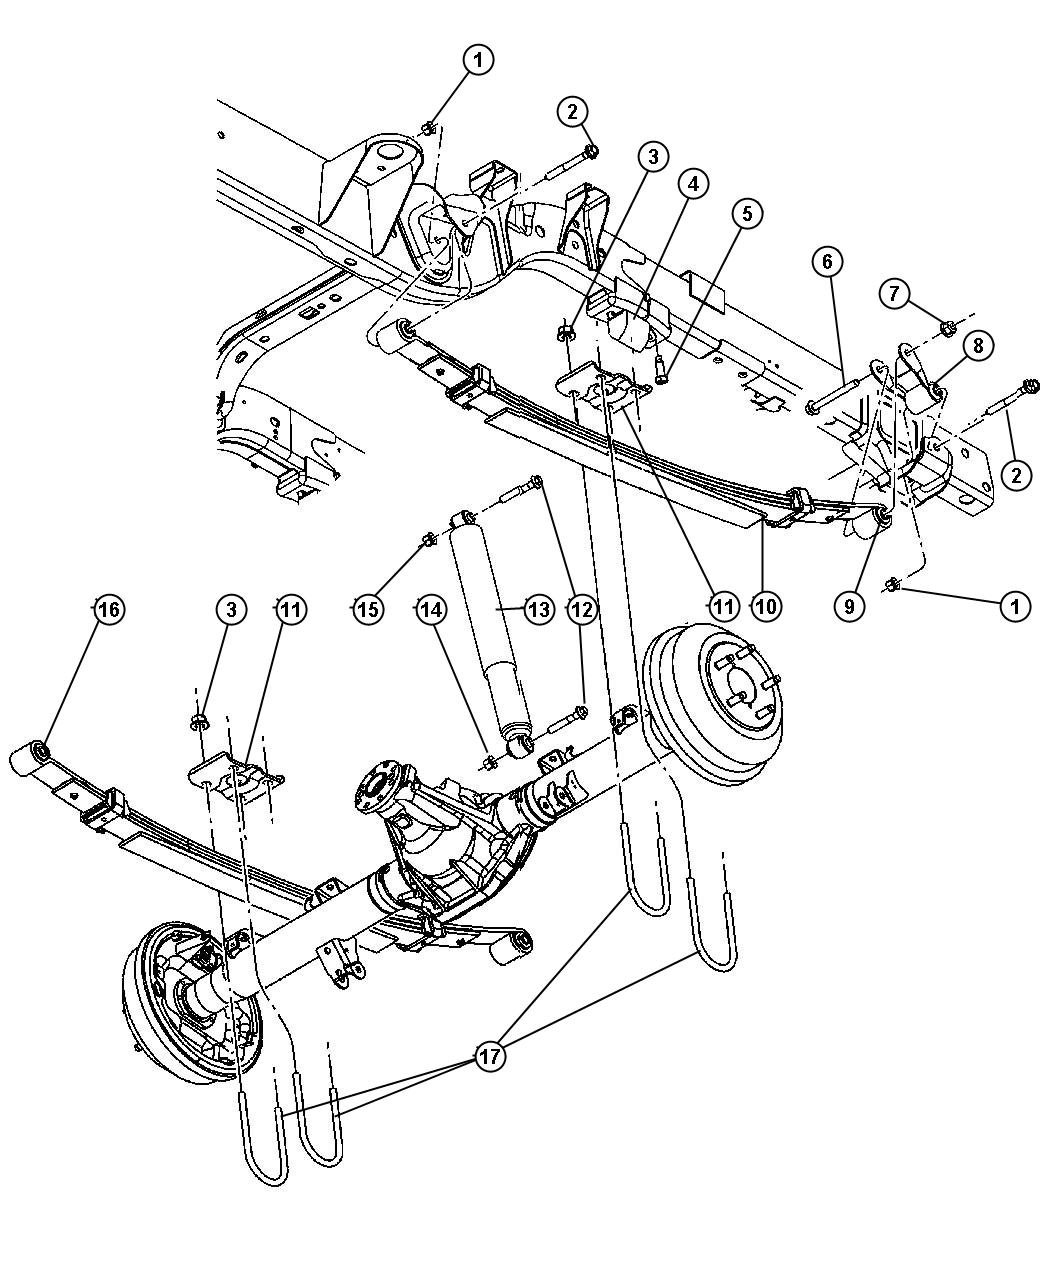 2006 chrysler pacifica front end diagram